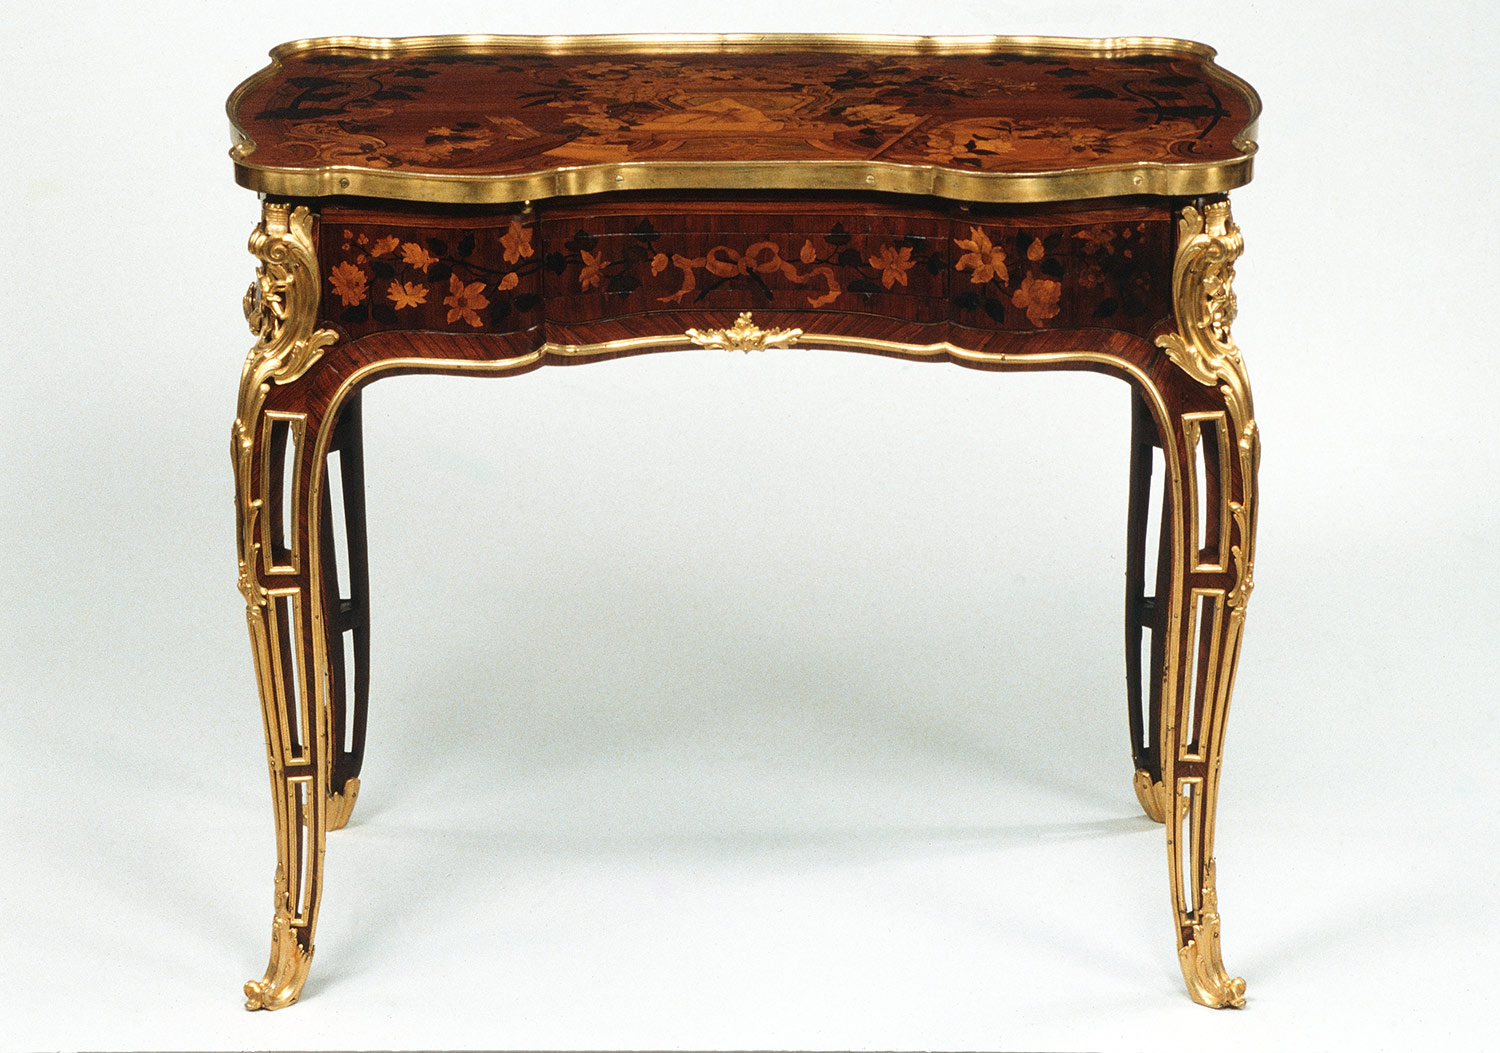 h2 1982.60.61 French Furniture